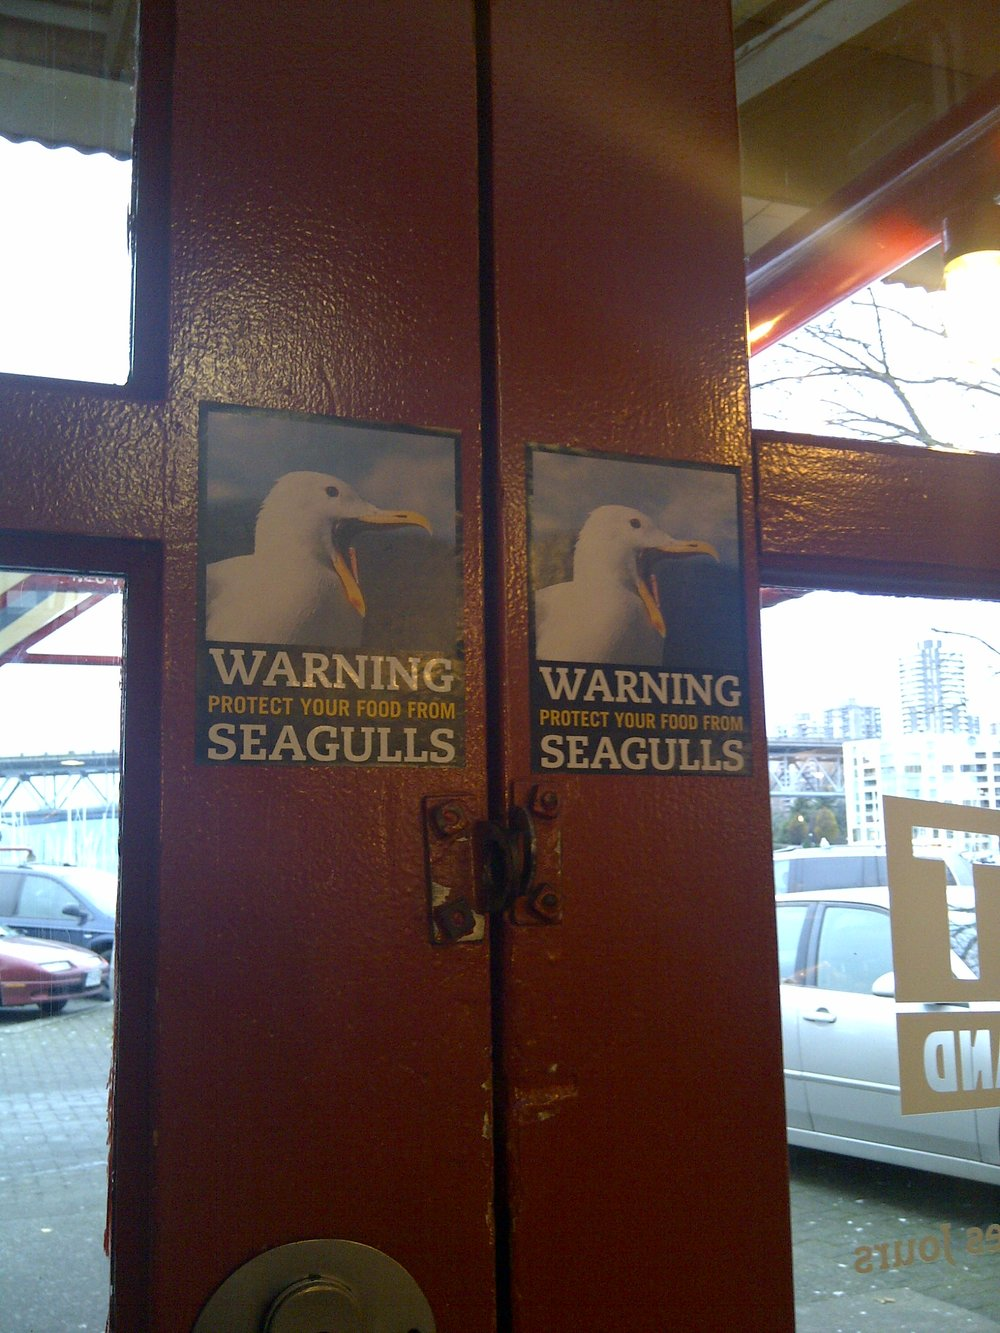 A warning that should be heeded, Granville Island, Vancouver BC